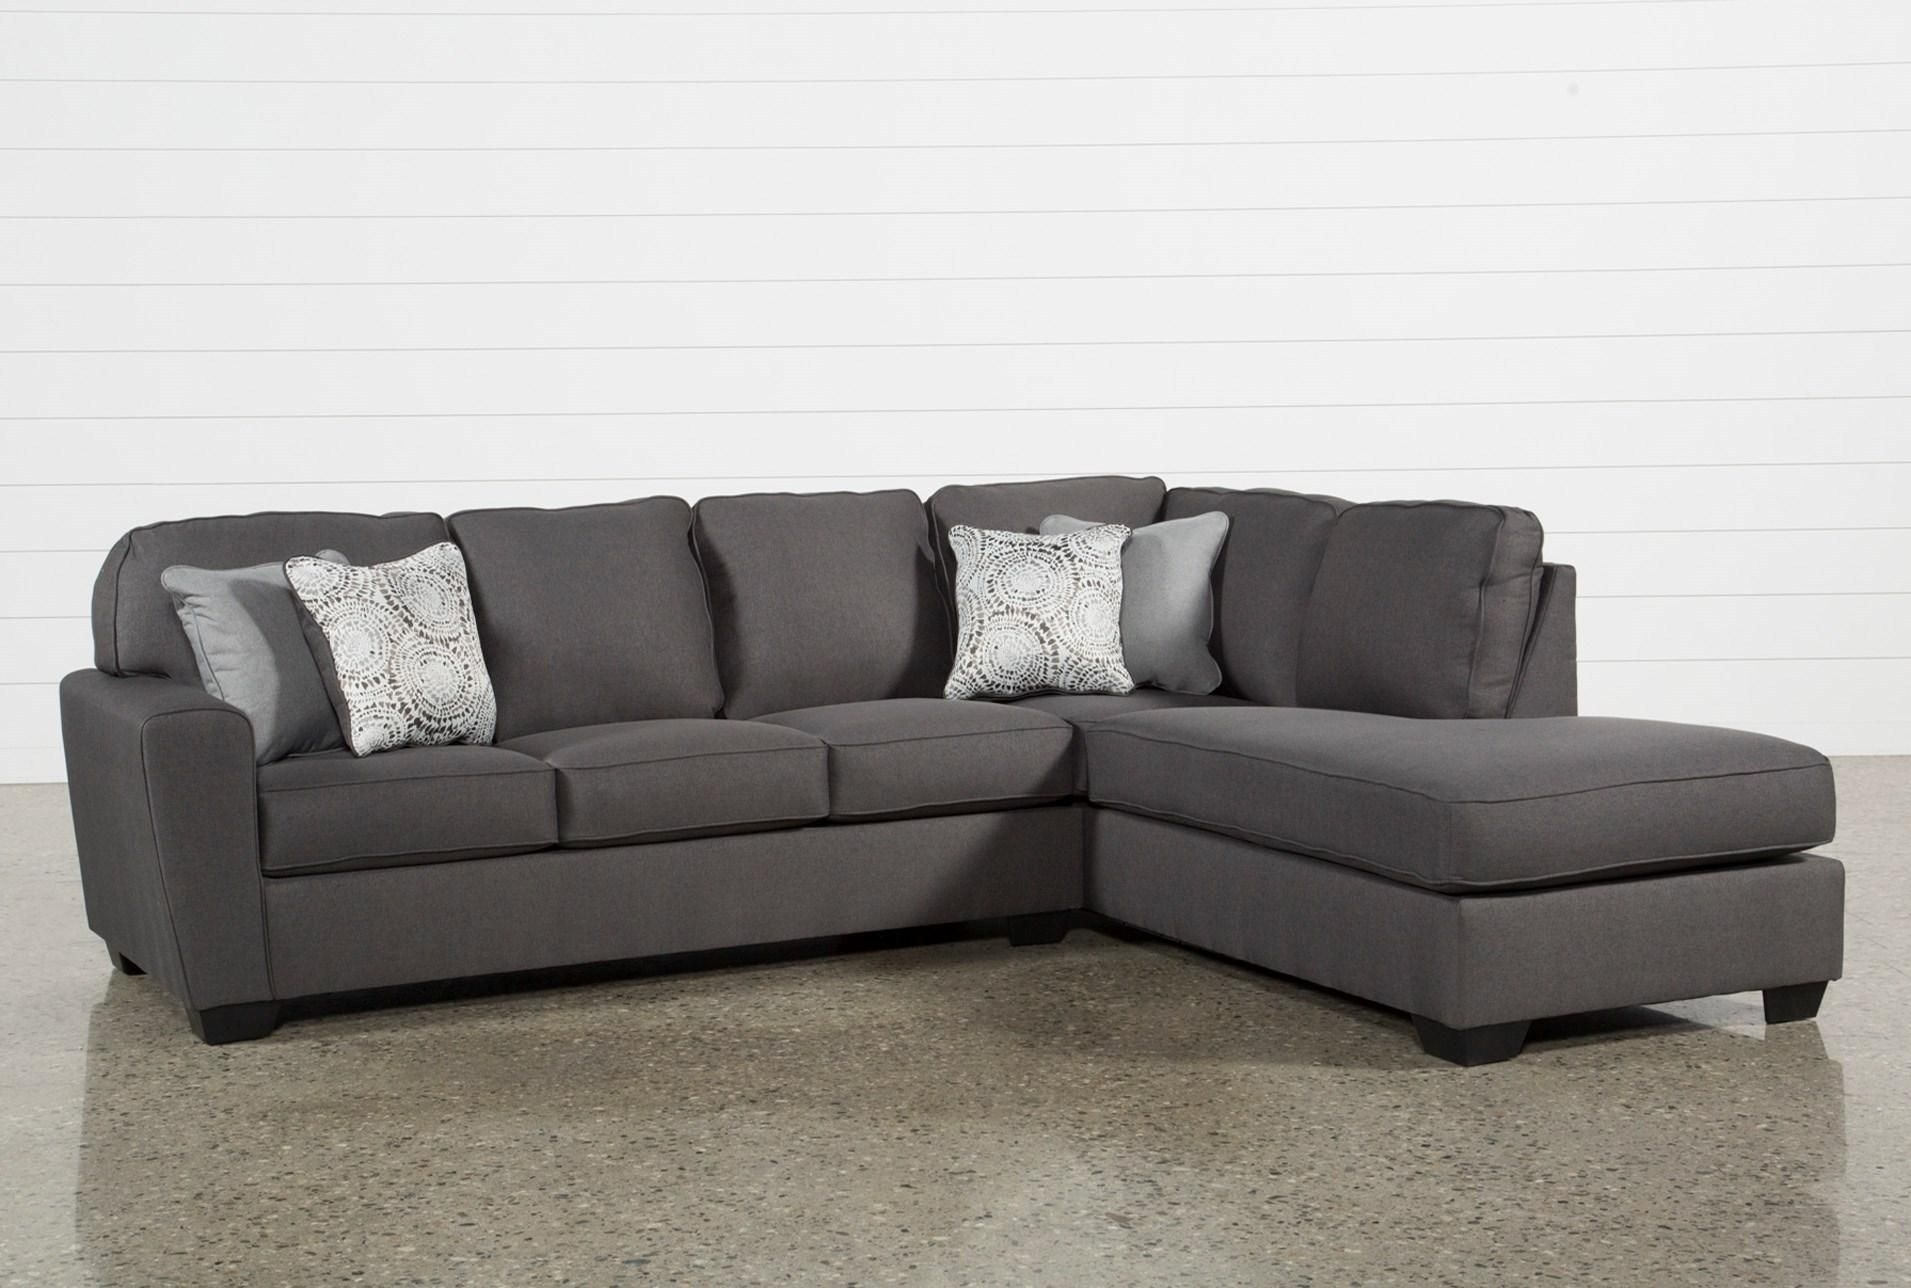 Mcdade Graphite 2 Piece Sectional W/raf Chaise | Livingroom For Arrowmask 2 Piece Sectionals With Laf Chaise (Image 17 of 25)